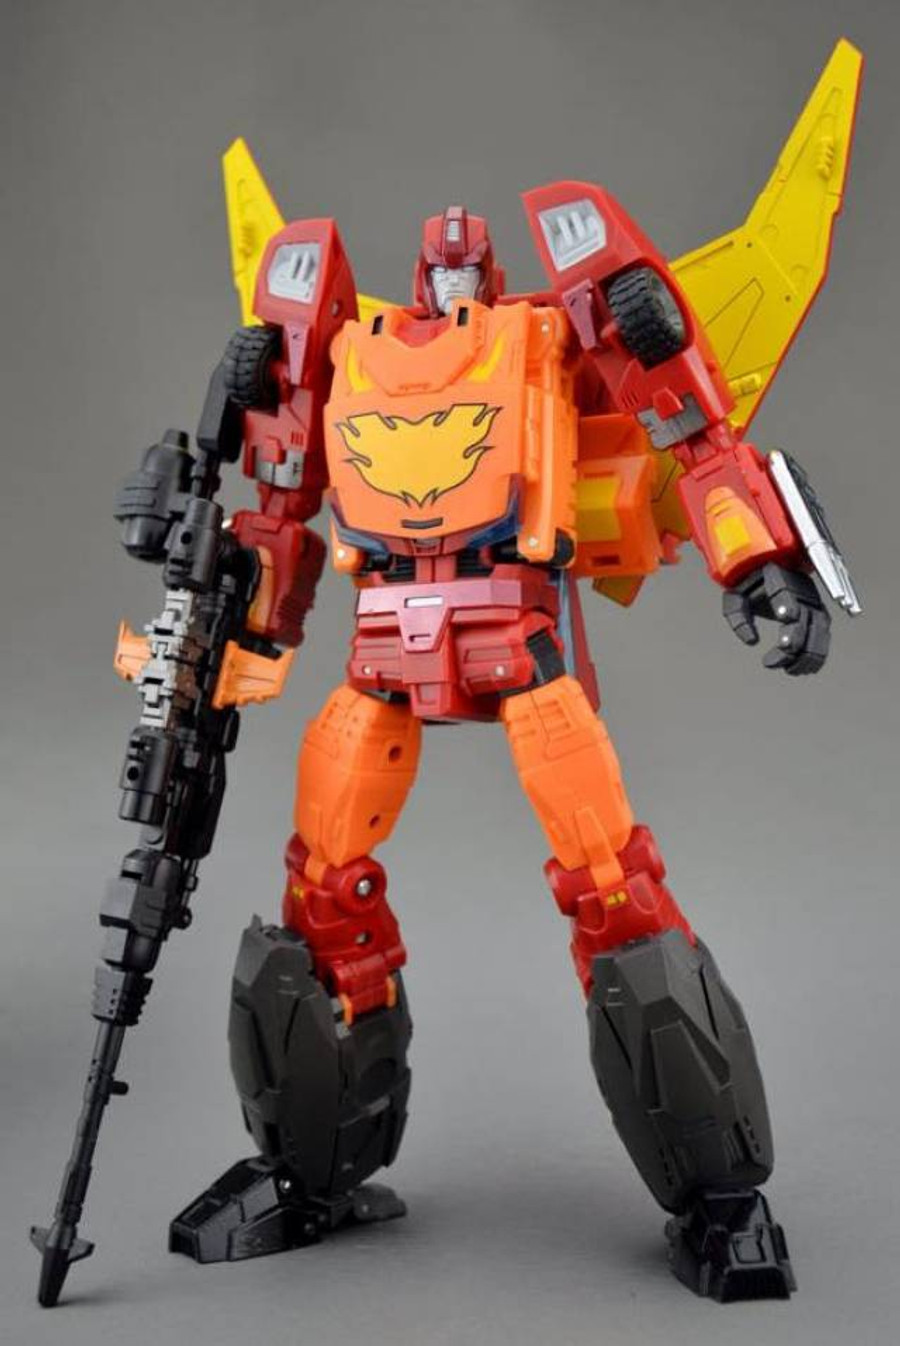 DX9 - D06 Carry (Masterpiece Style Figure)